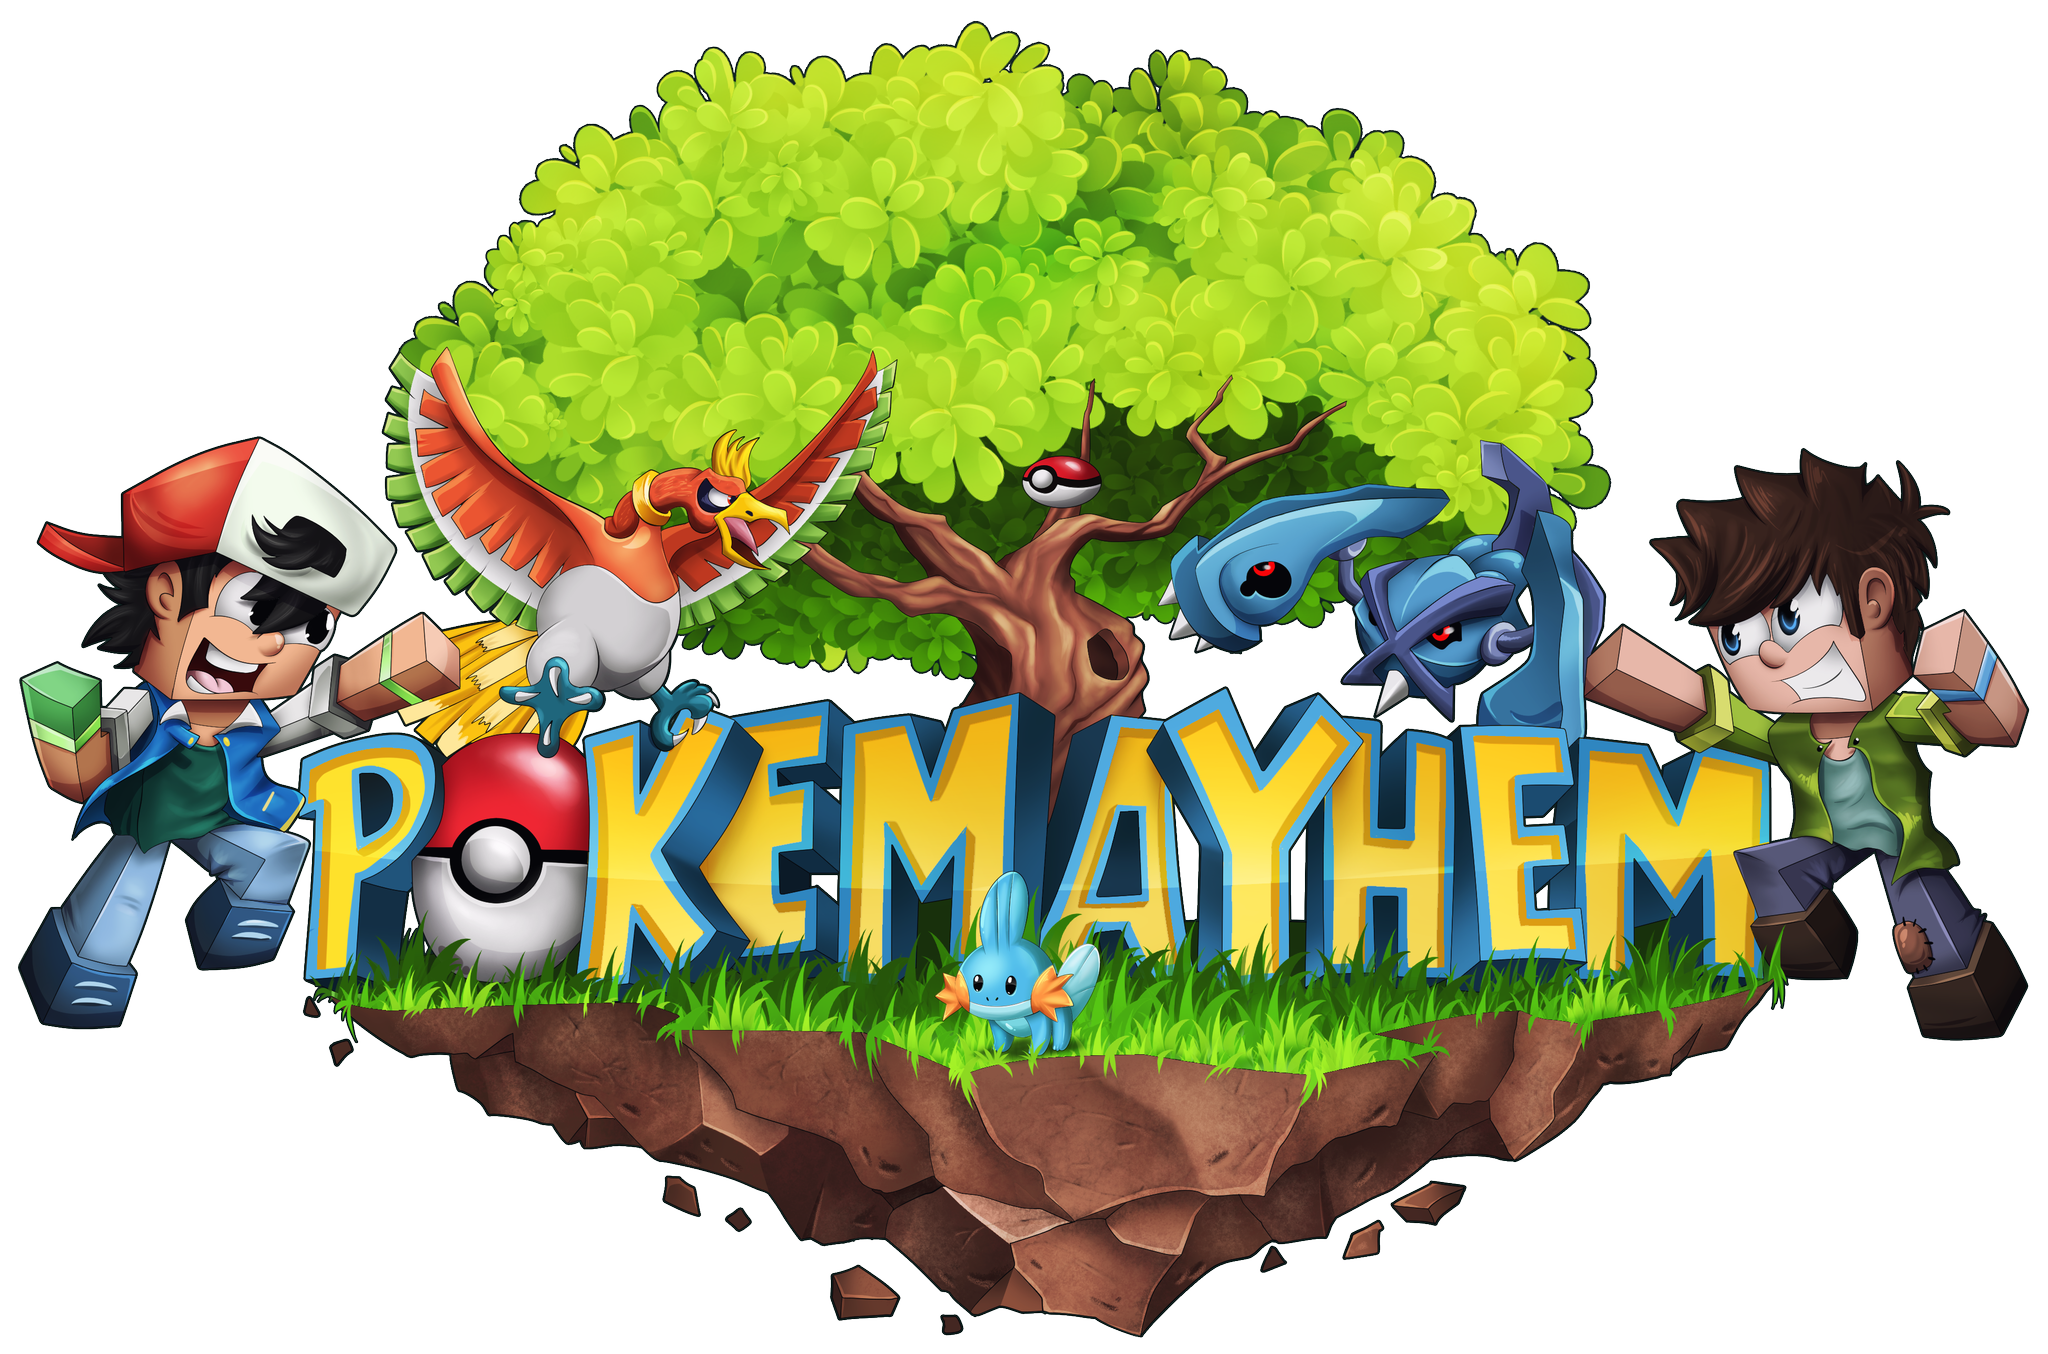 PokeMayhem Pixelmon